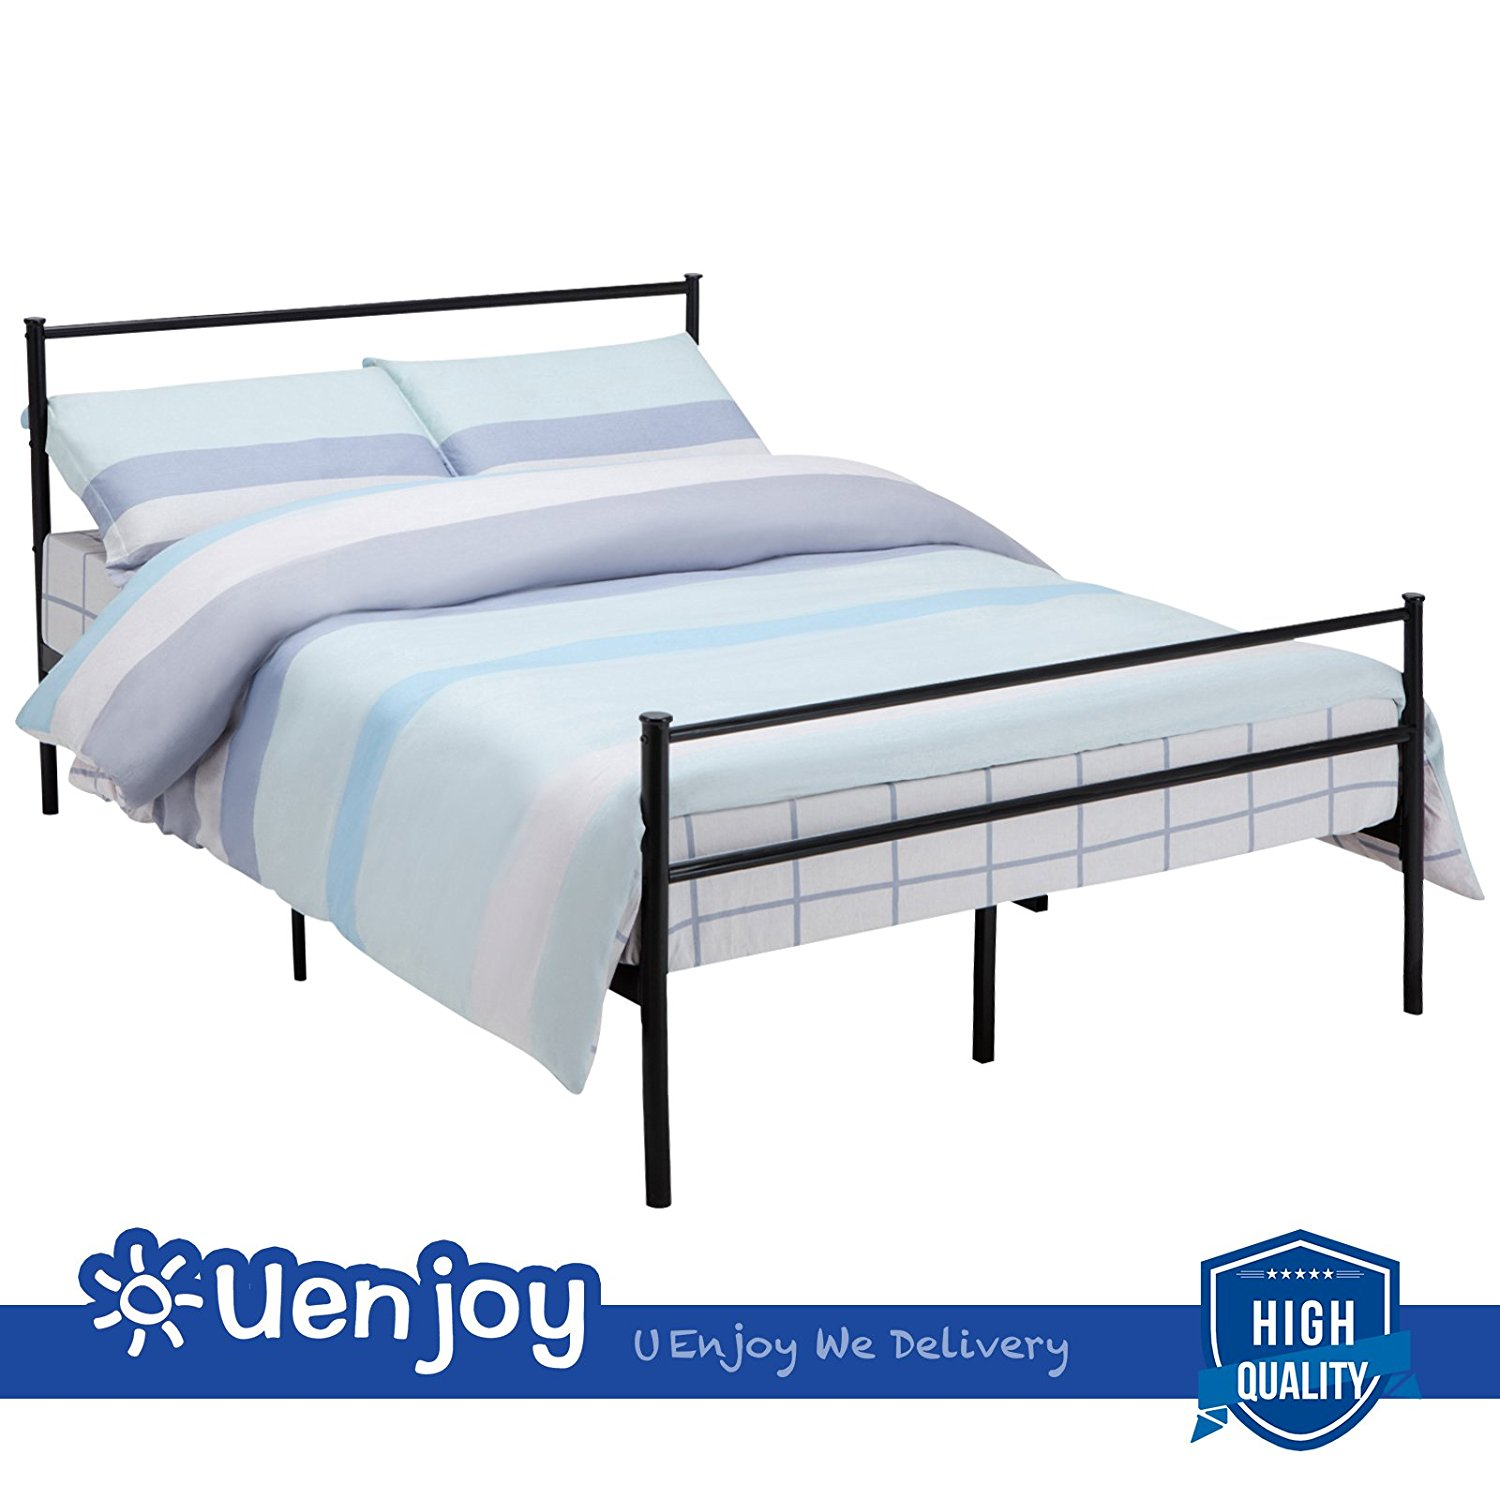 c3cccb30cf900 Get Quotations · New Queen Size Metal Bed Frame Platform Headboards 6 Leg  Bedroom Furniture